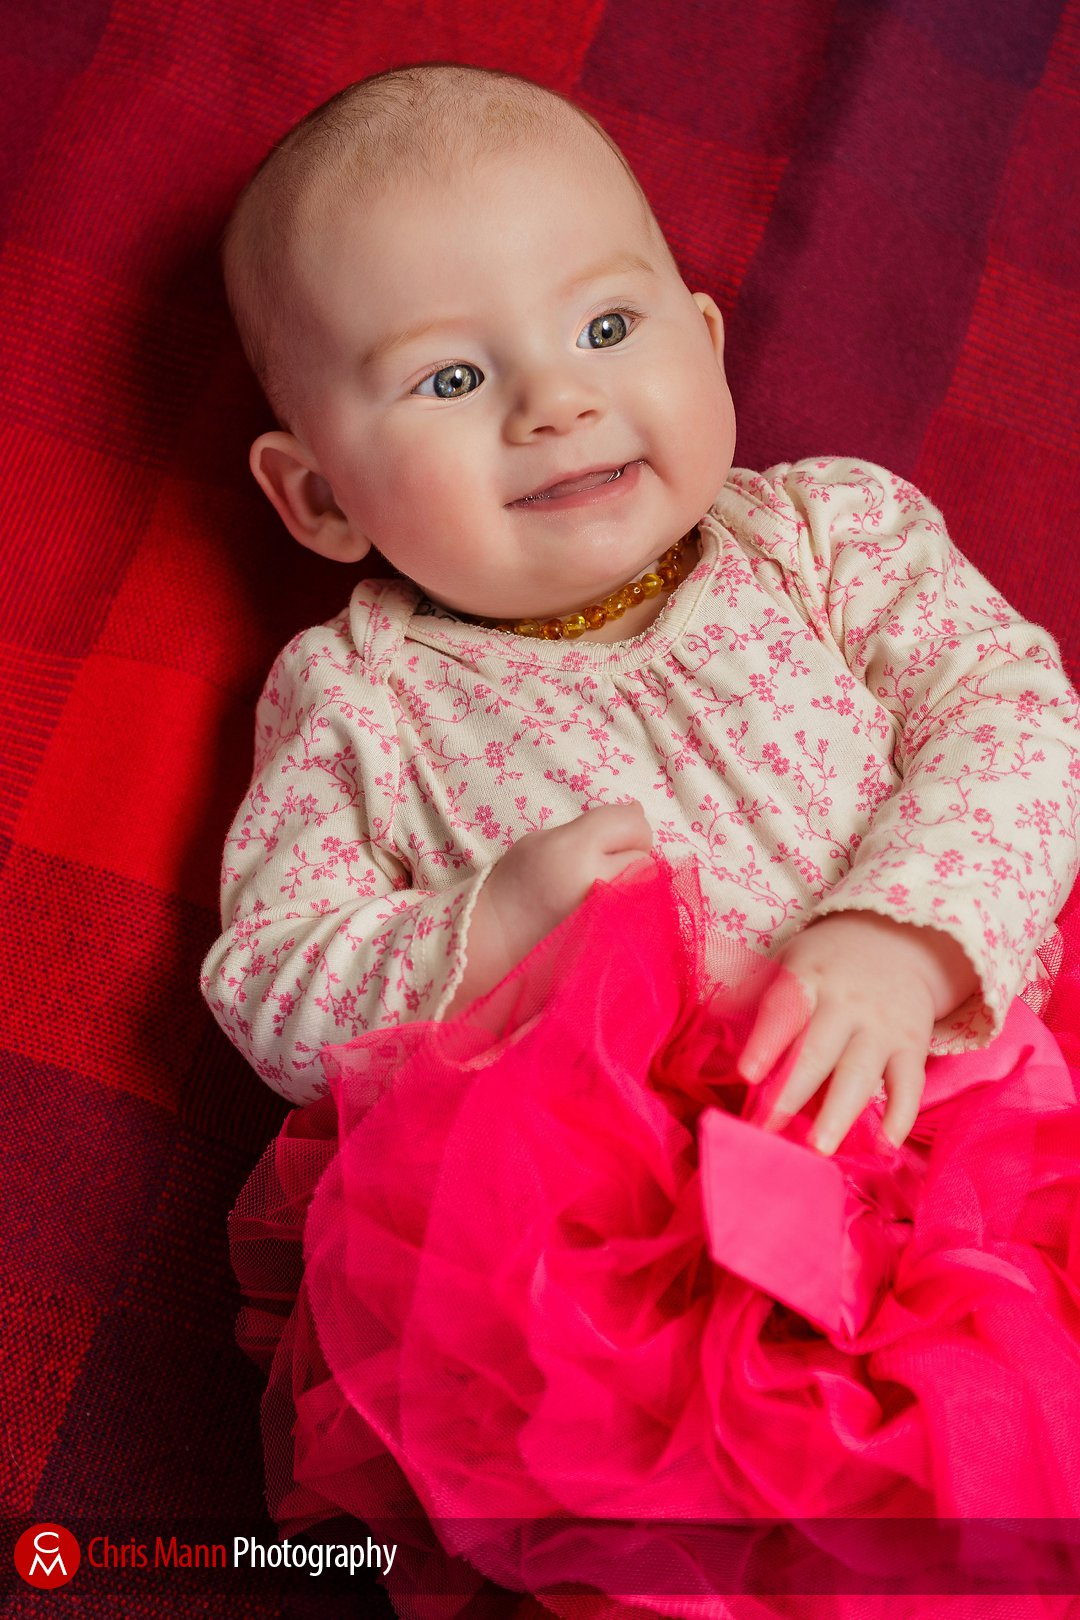 happy baby on red rug background